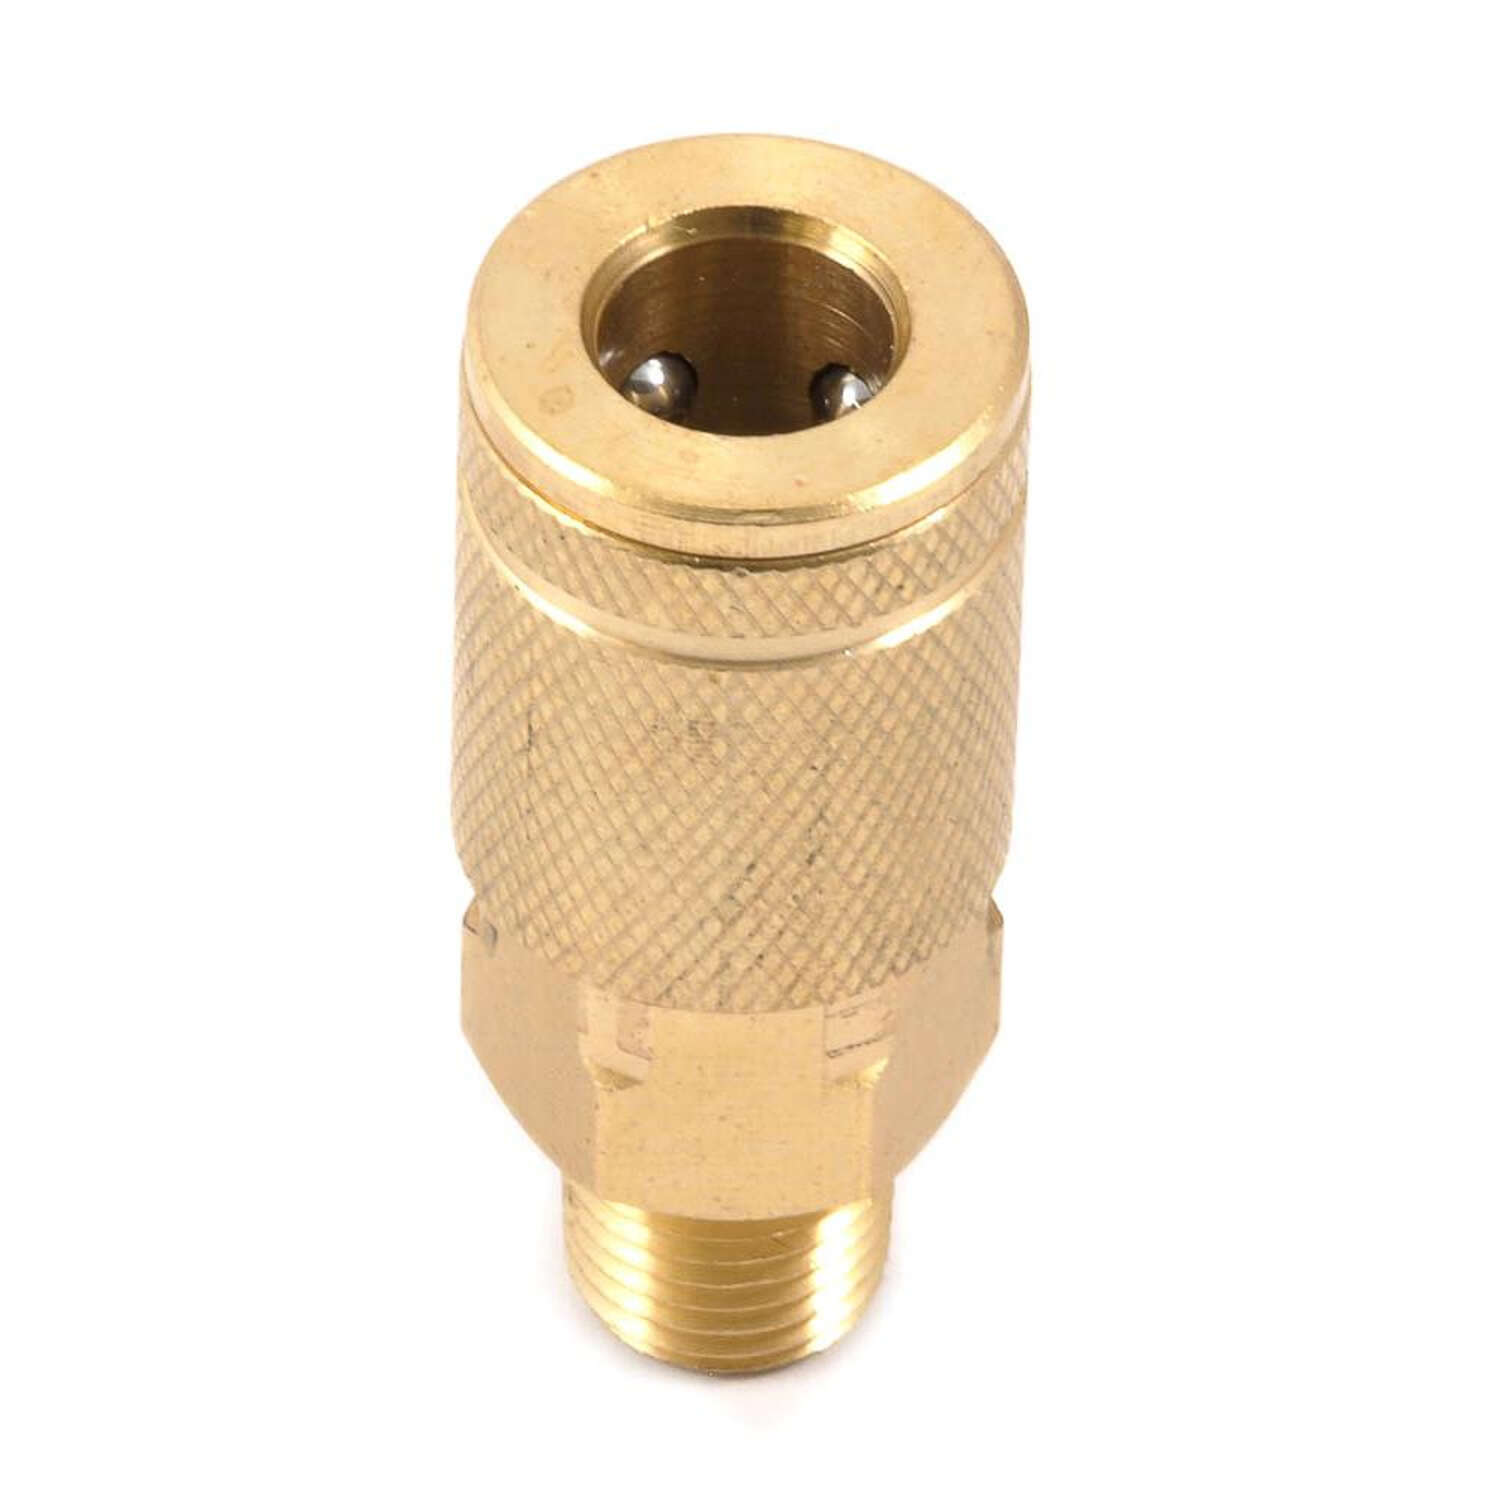 Forney Brass Air Coupler 1/4 in. Male NPT 1/4 in. 1 pc.